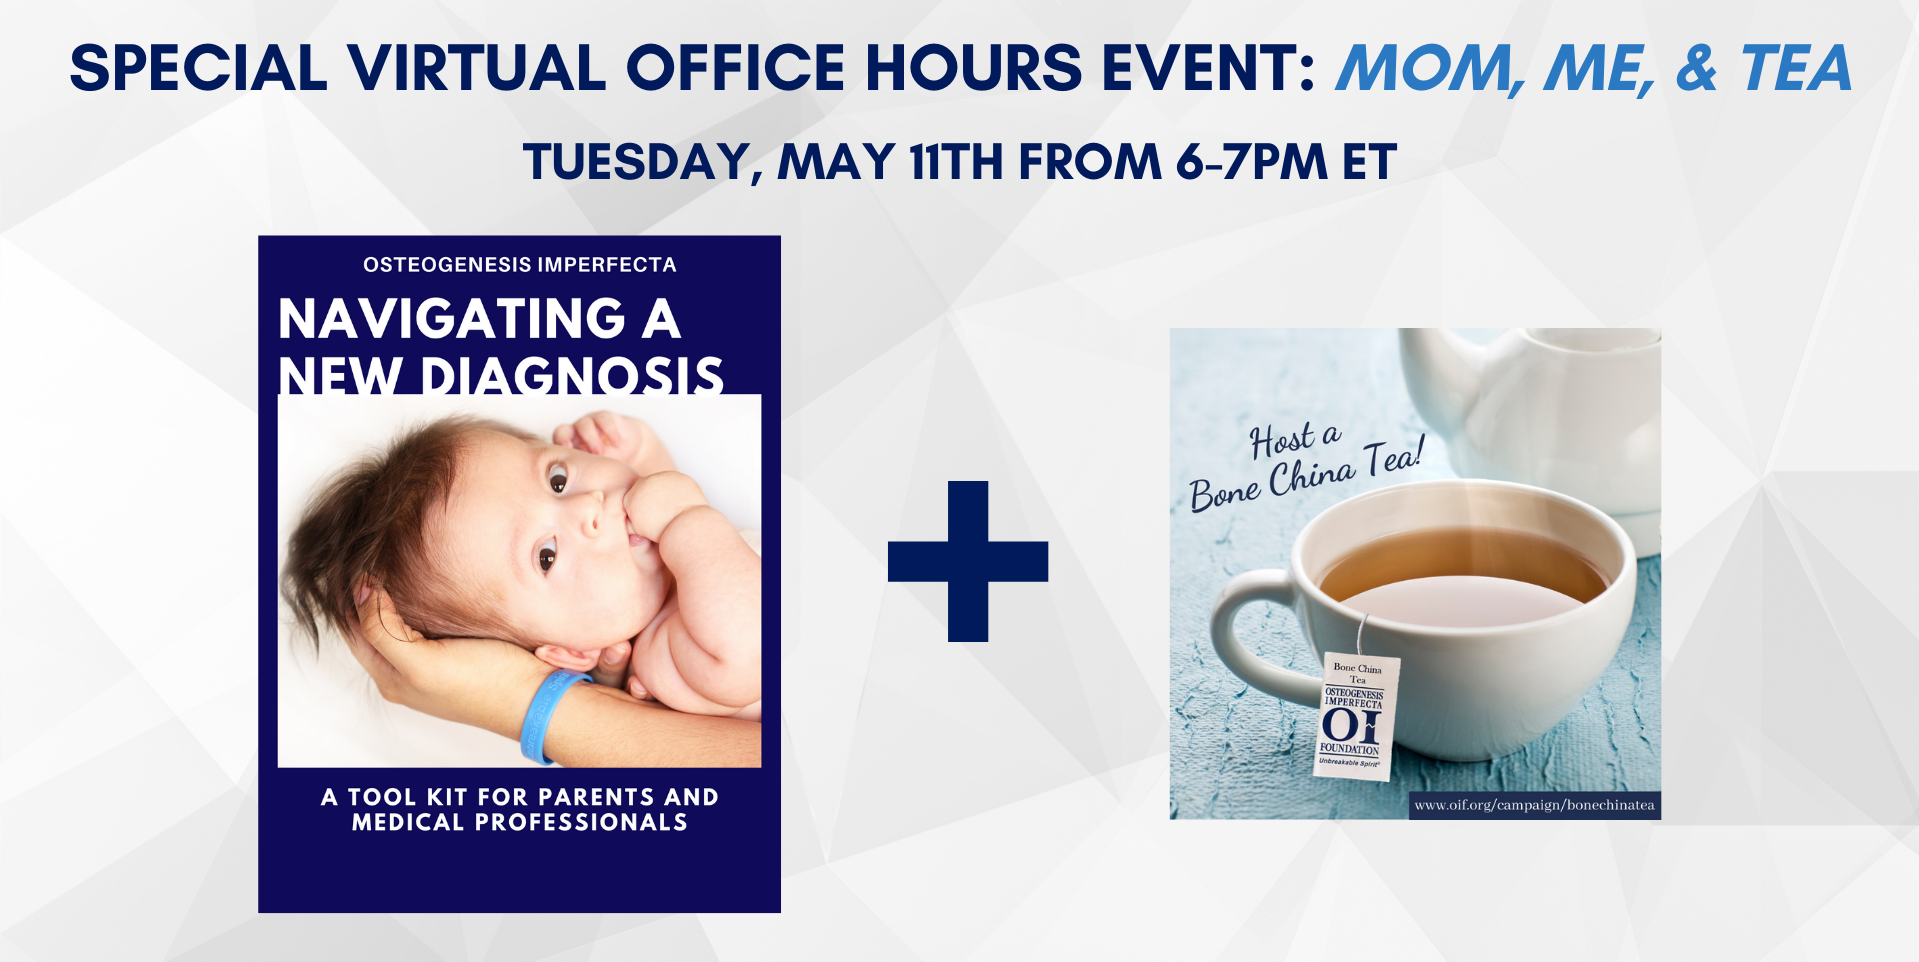 Special Virtual Office Hours Event: Mom, Me, & Tea